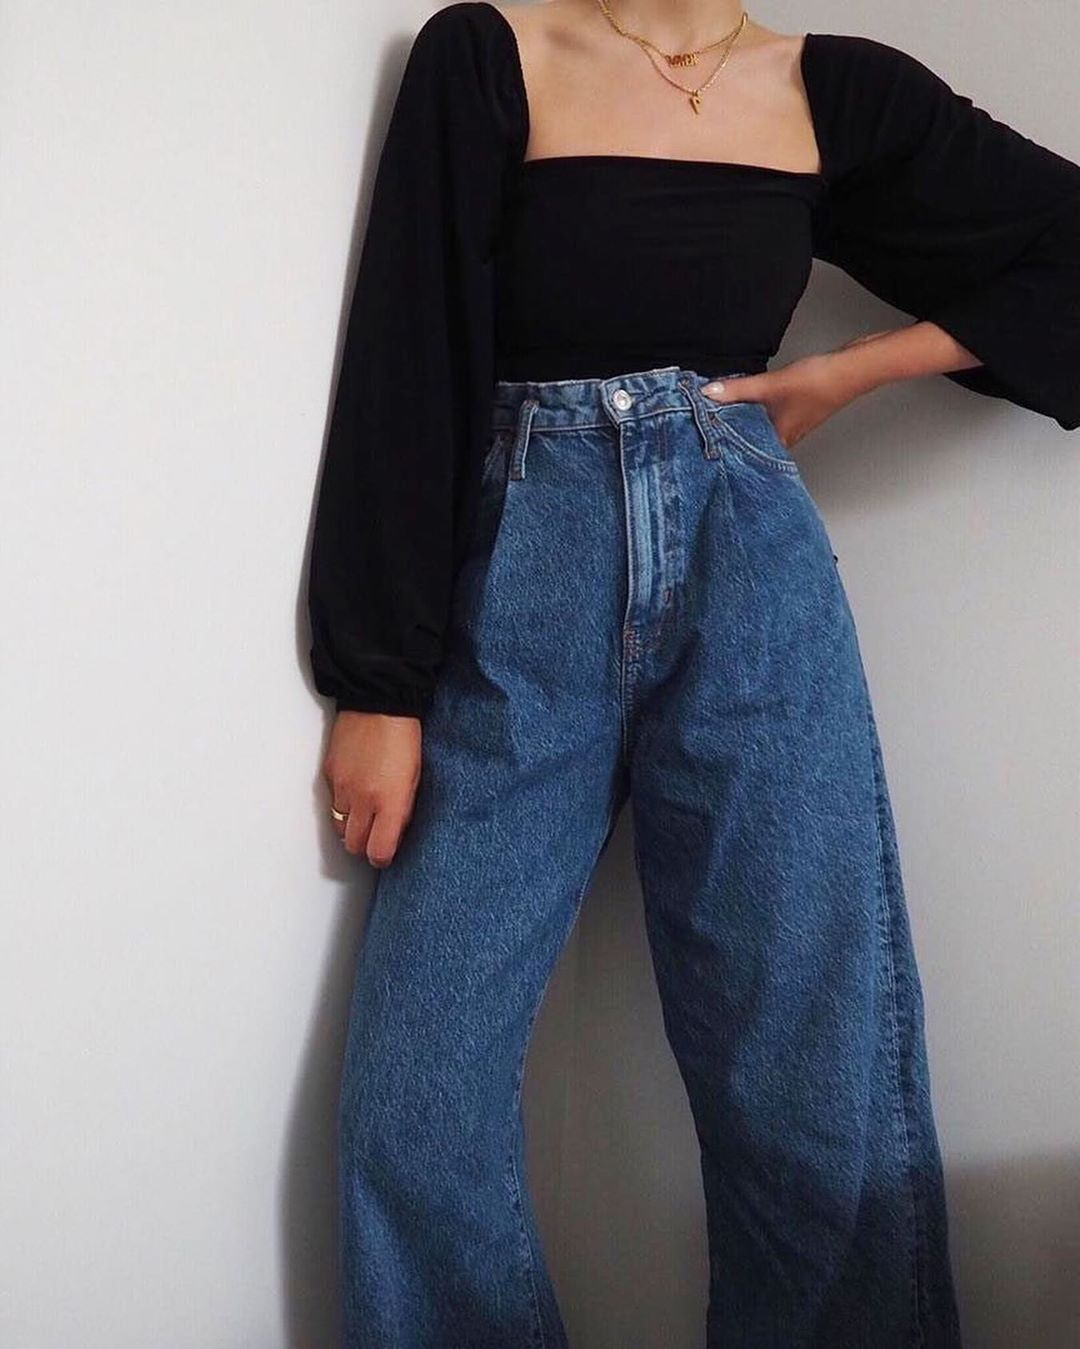 Grandpa jeanstheyre somewhere between mom jeans and a baggy fit and were fully obsessed. Tap our link to get in on the potent denim  Mom Jeans  Ideas of Mom Jeans #MomJeans  - Mom Jeans - Ideas of Mom Jeans #MomJeans